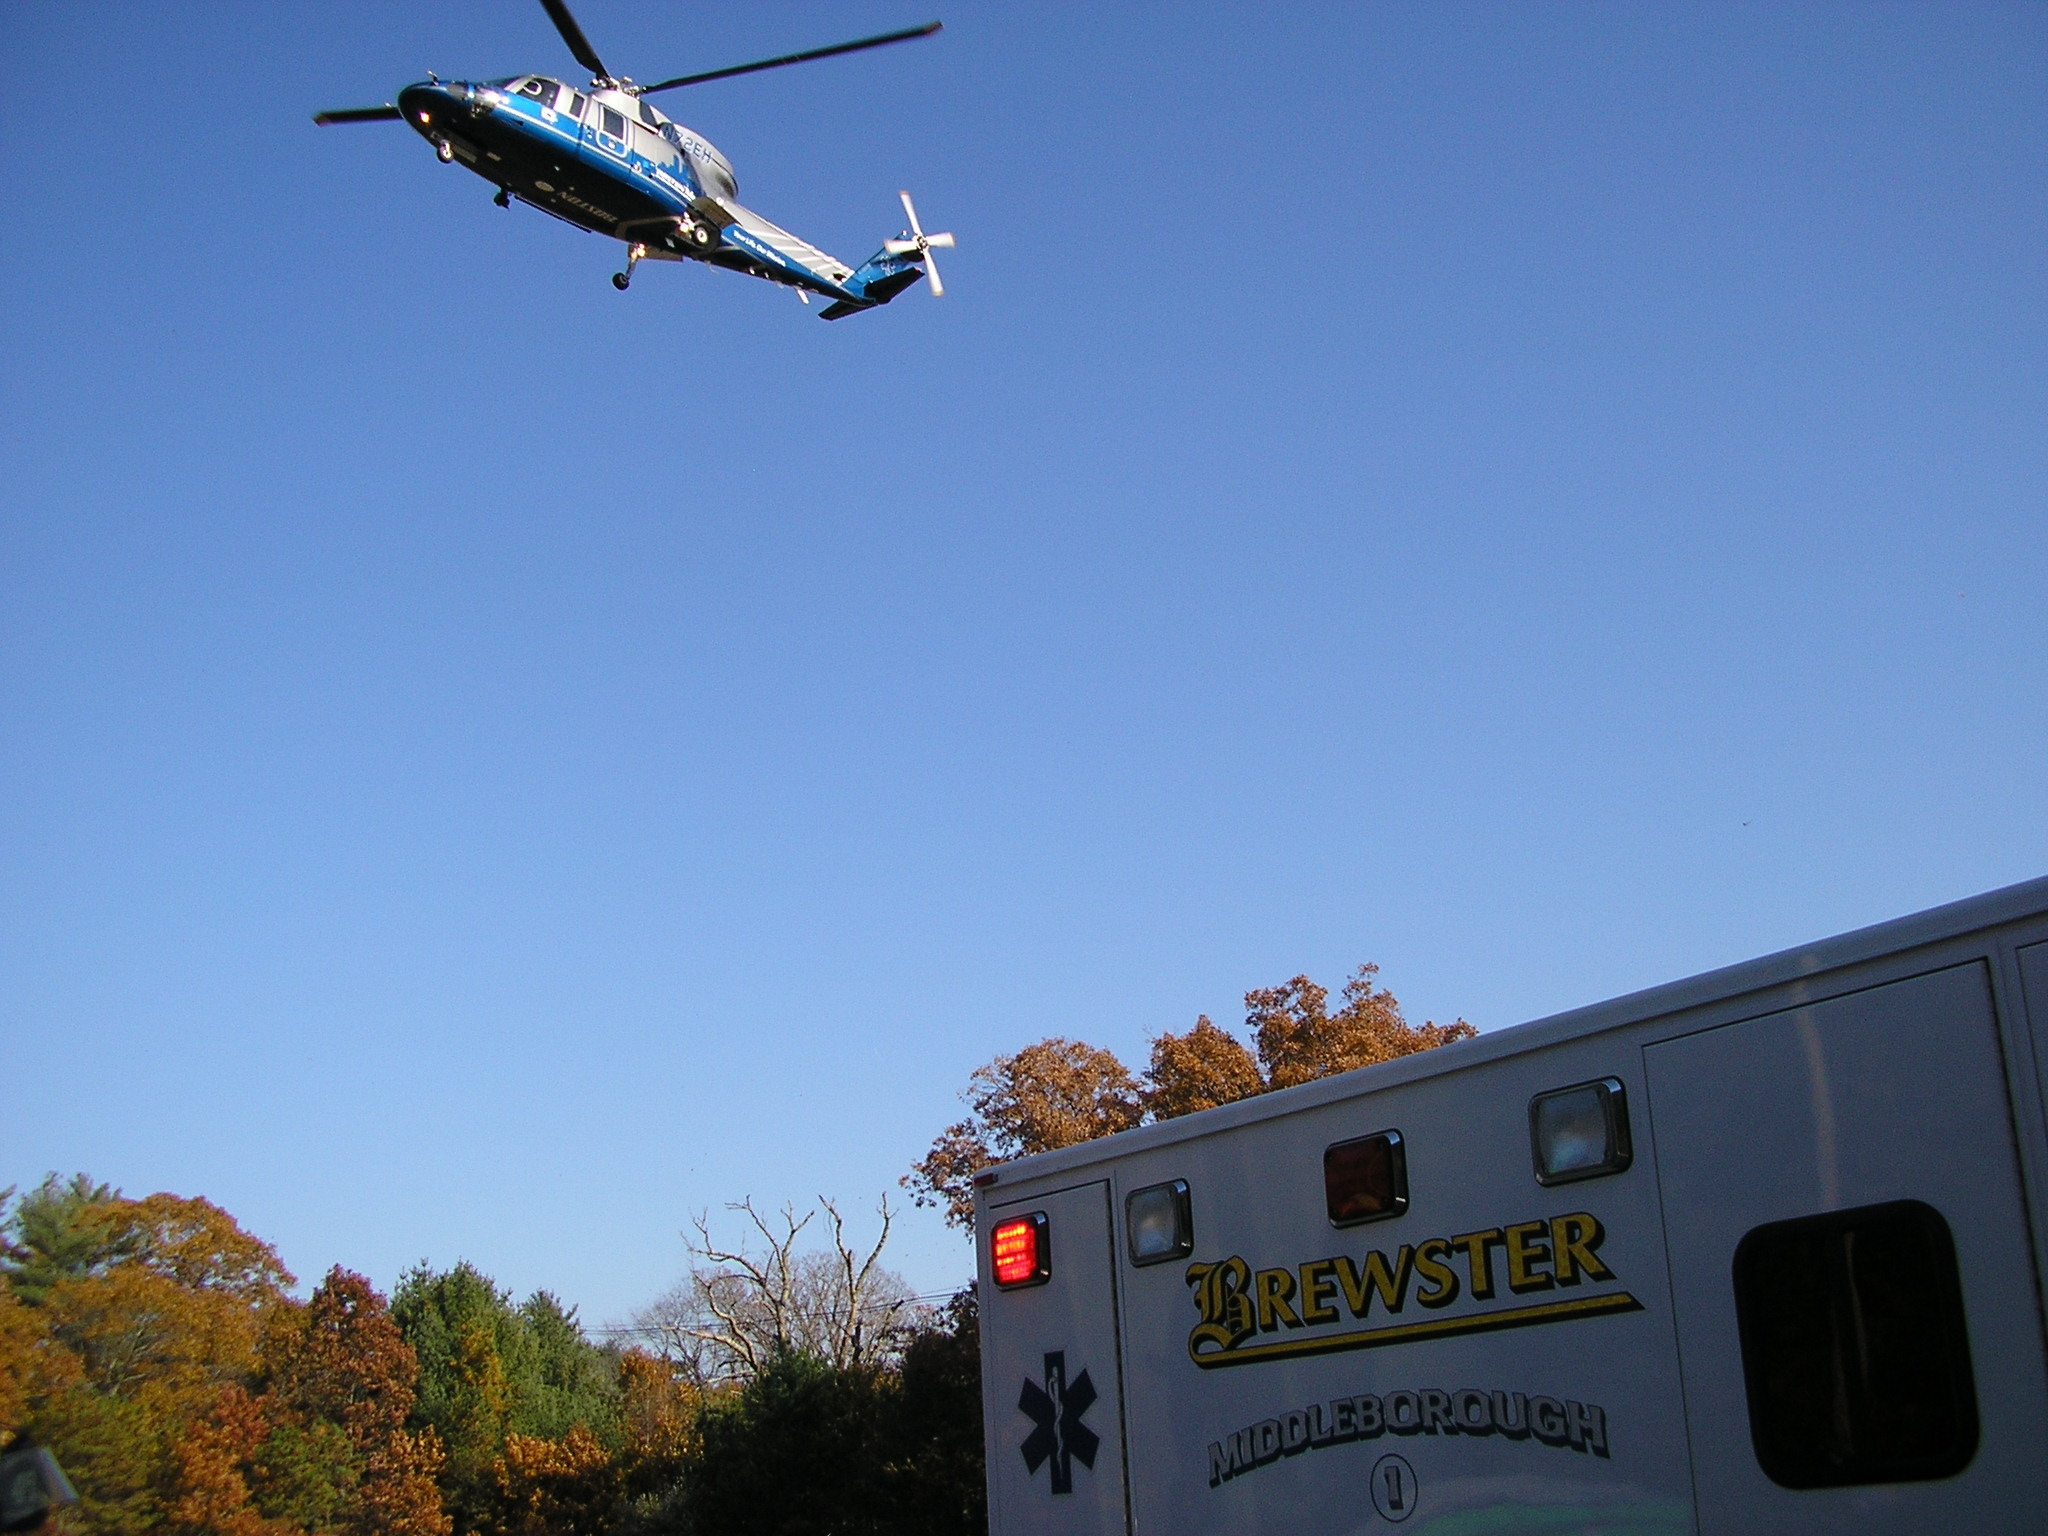 Helicopter and Brewster Ambulance